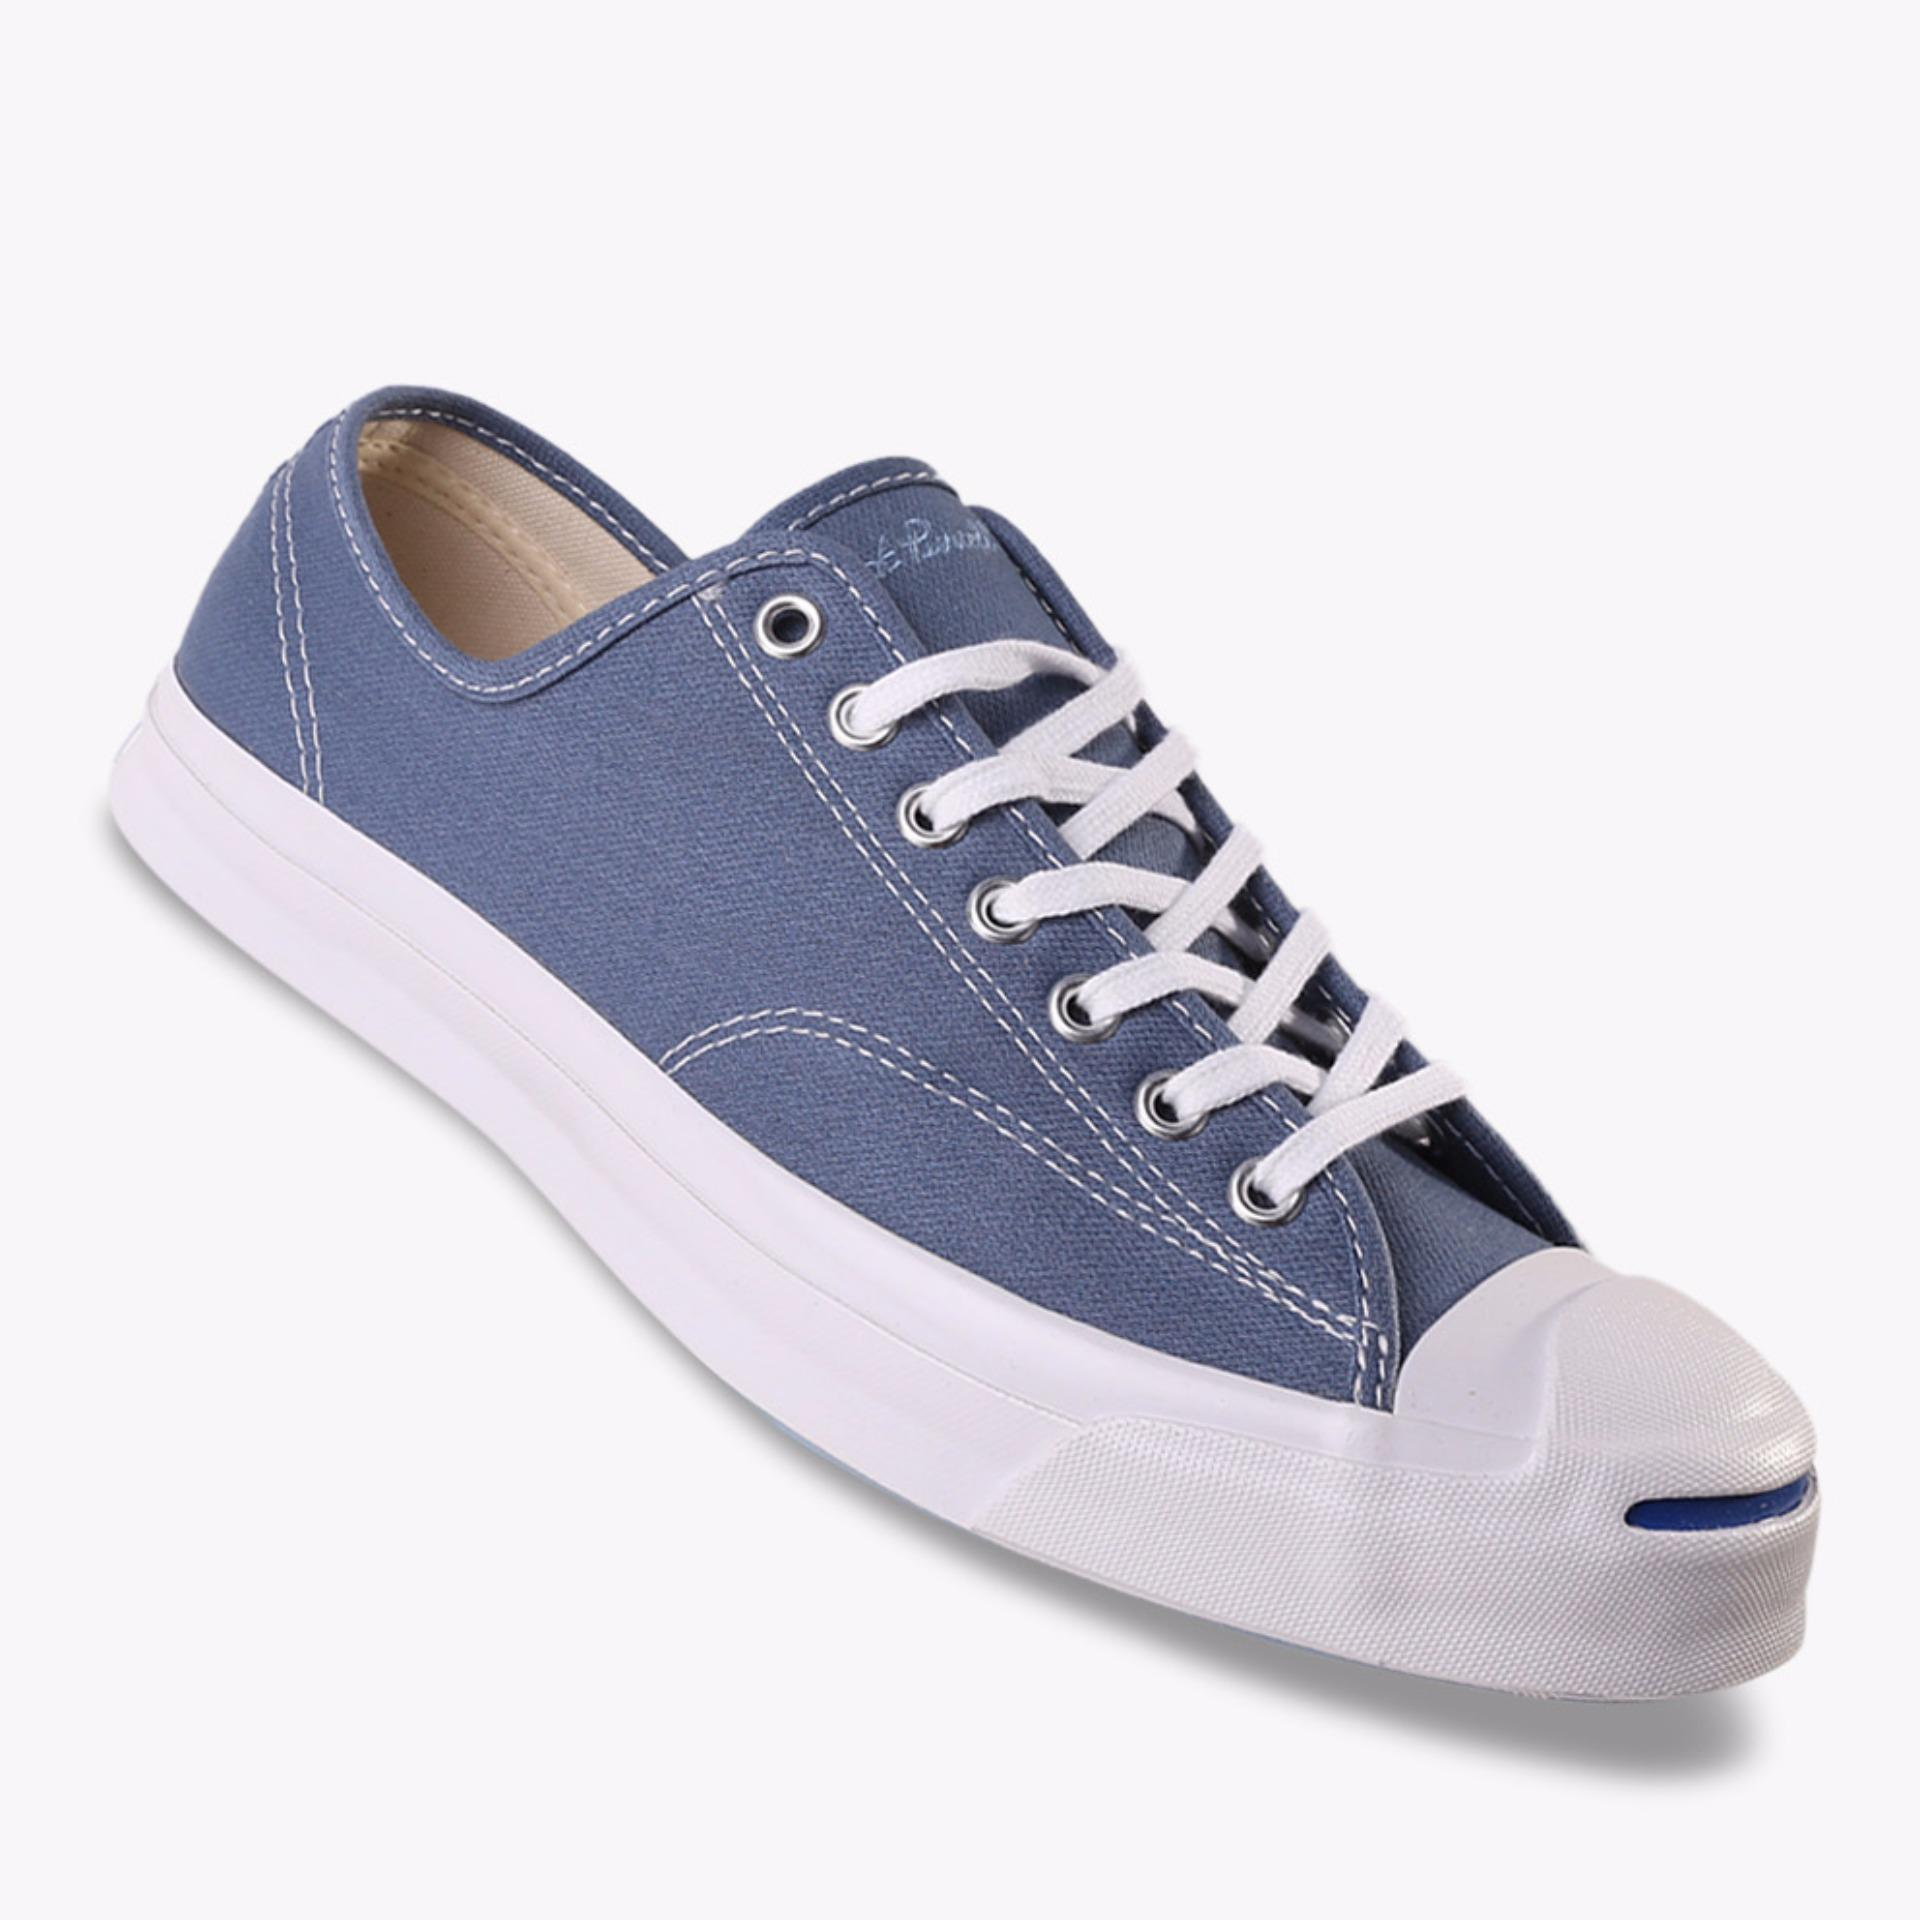 Jual Beli Converse Jack Purcell Signature Ox Men S Sneakers Shoes Biru Baru Indonesia